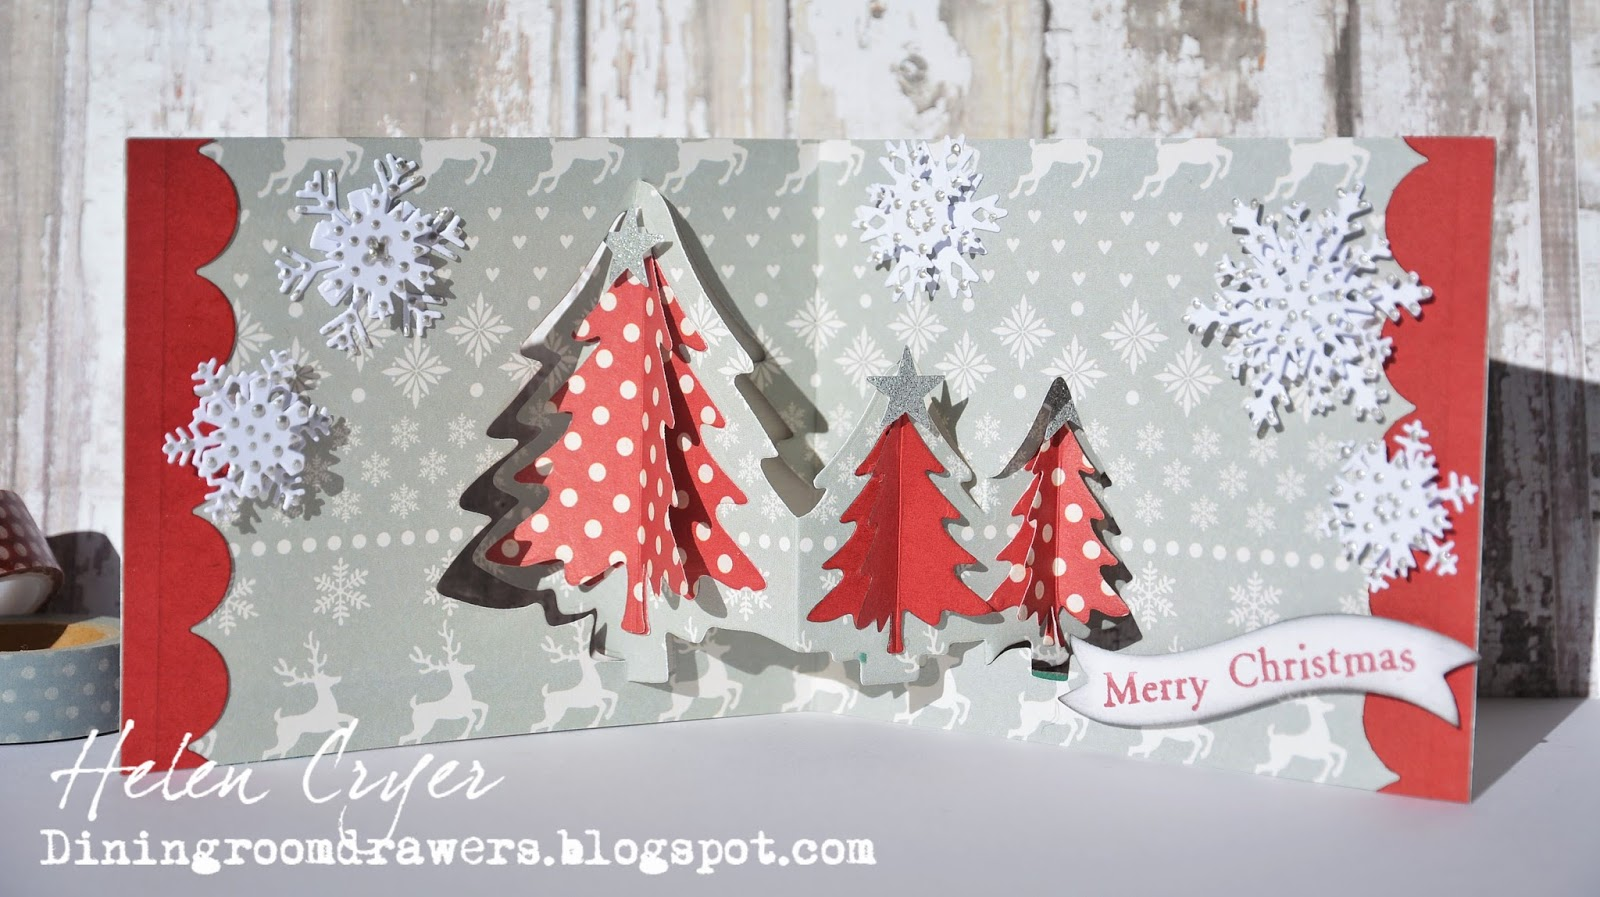 The Dining Room Drawers: Evergreen Pivot Christmas Tree Pop It Ups Card